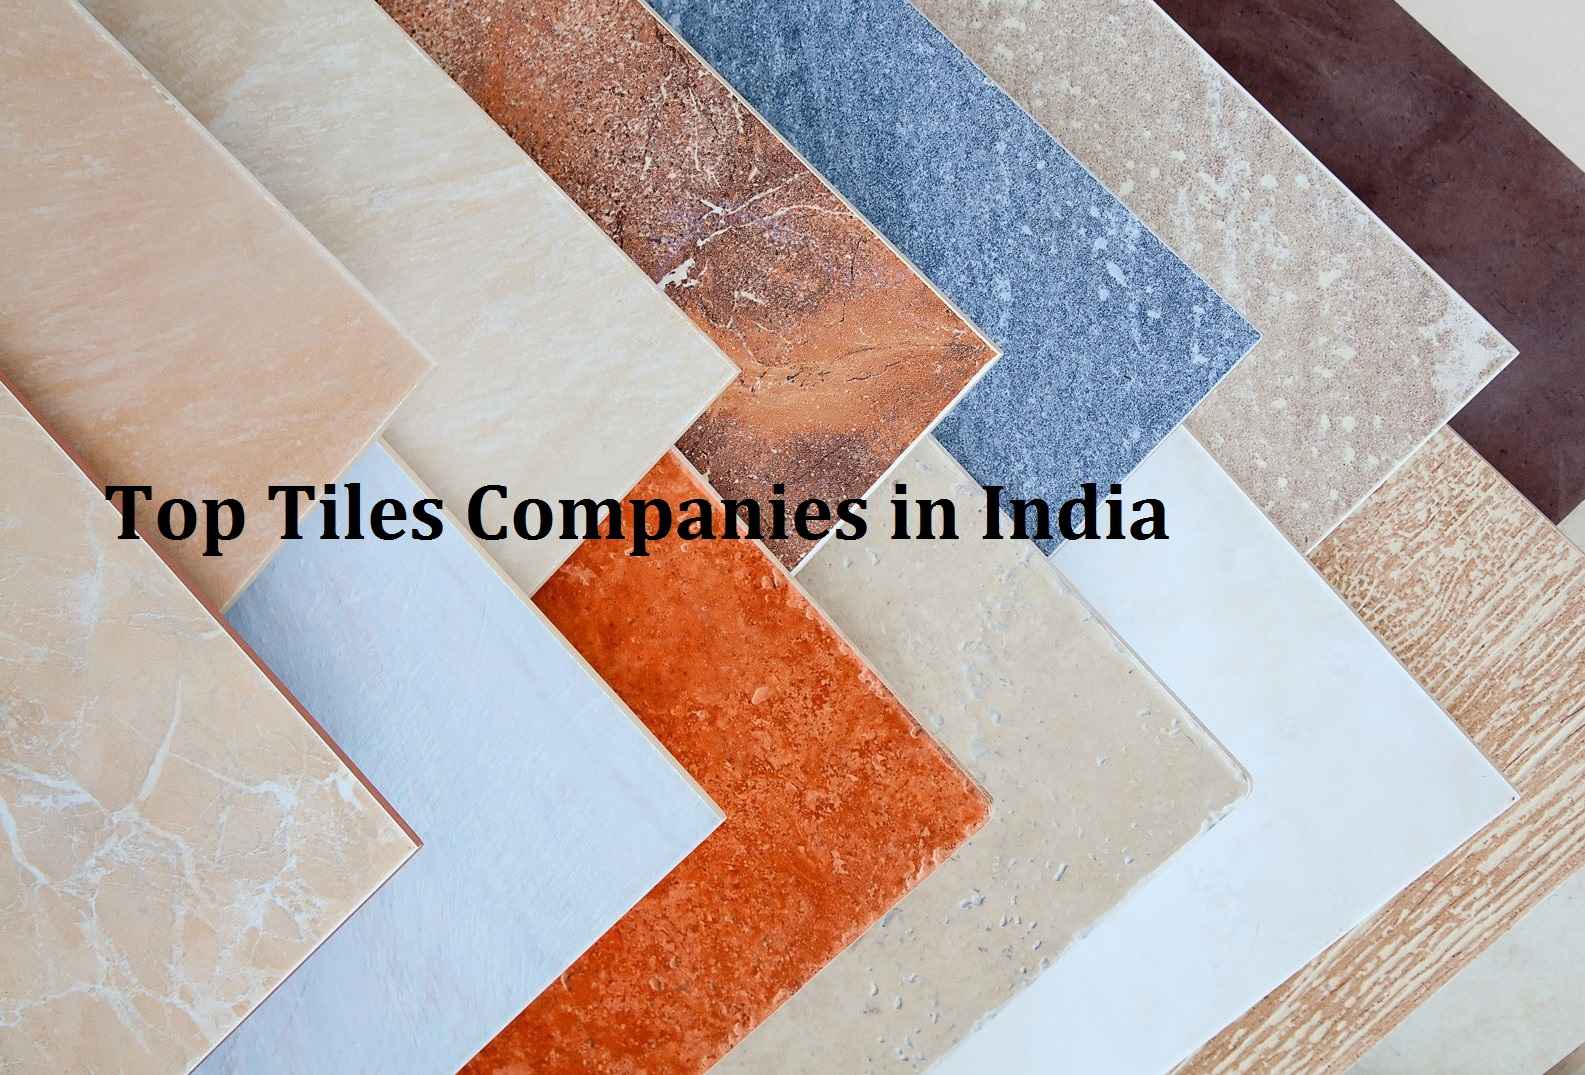 List of top 10 tiles companies in india learning center list of top 10 tiles companies in india learning center fundoodata dailygadgetfo Gallery